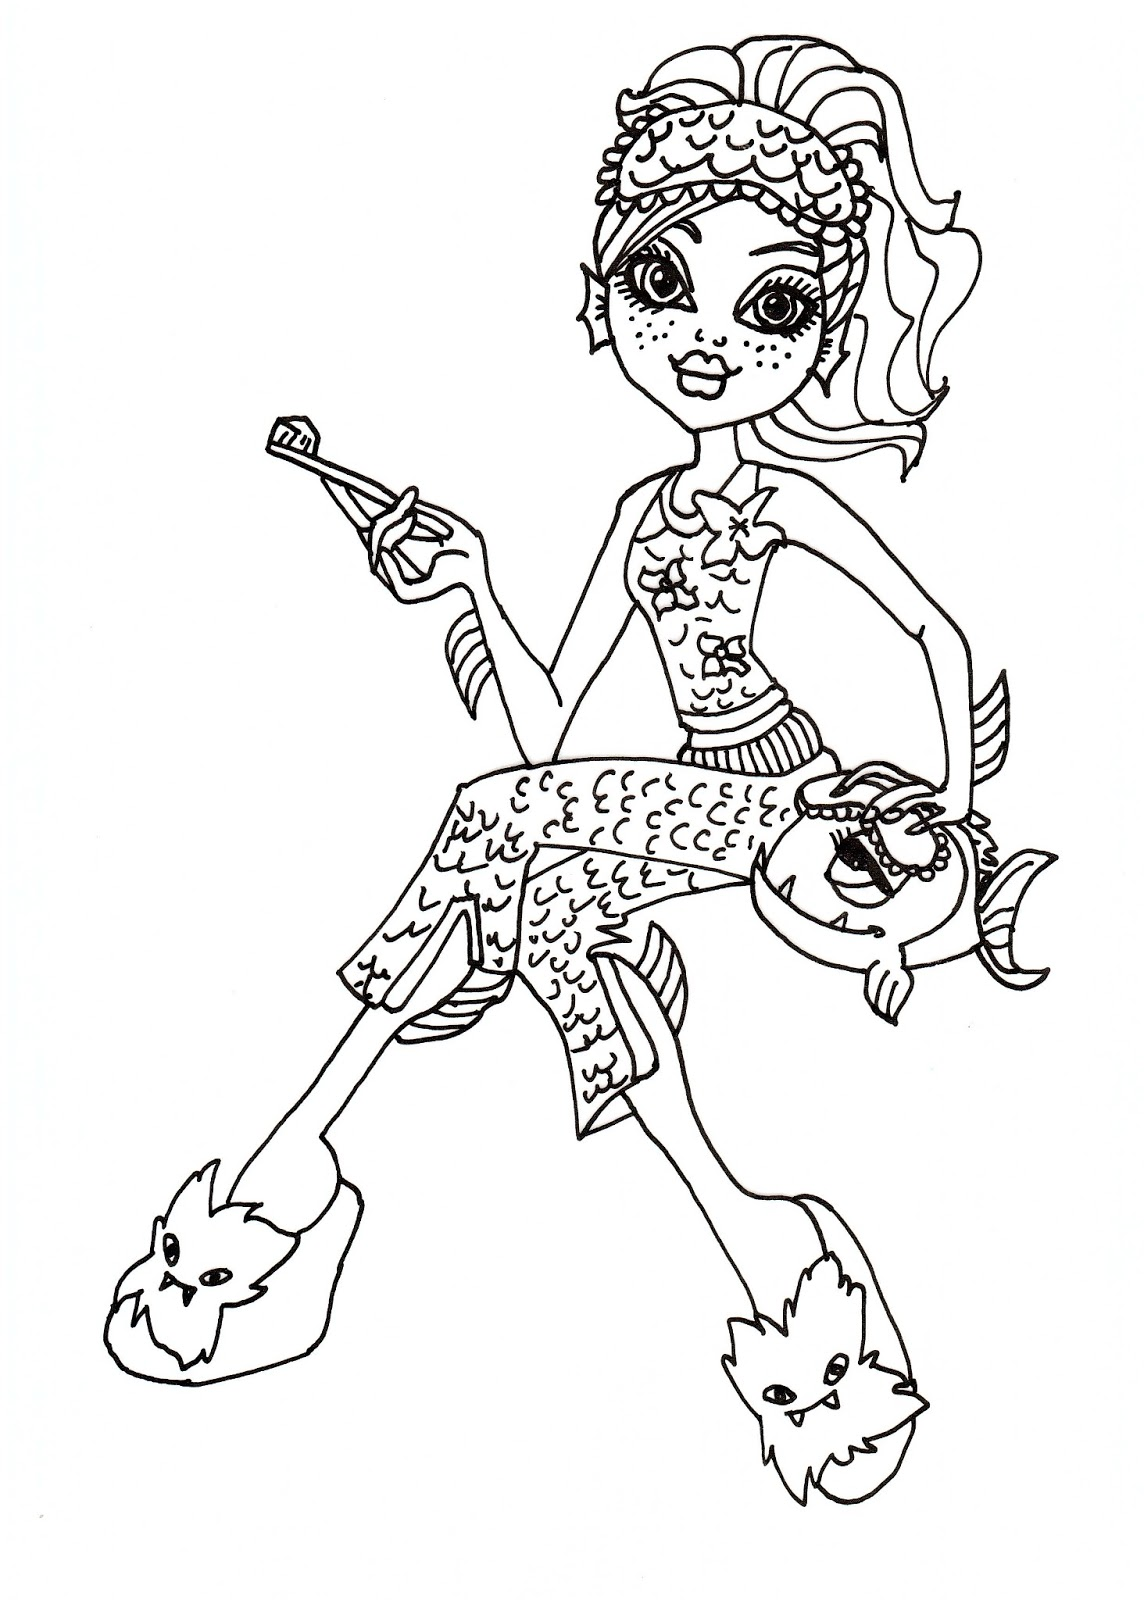 lagoona blue printable coloring pages - photo#10